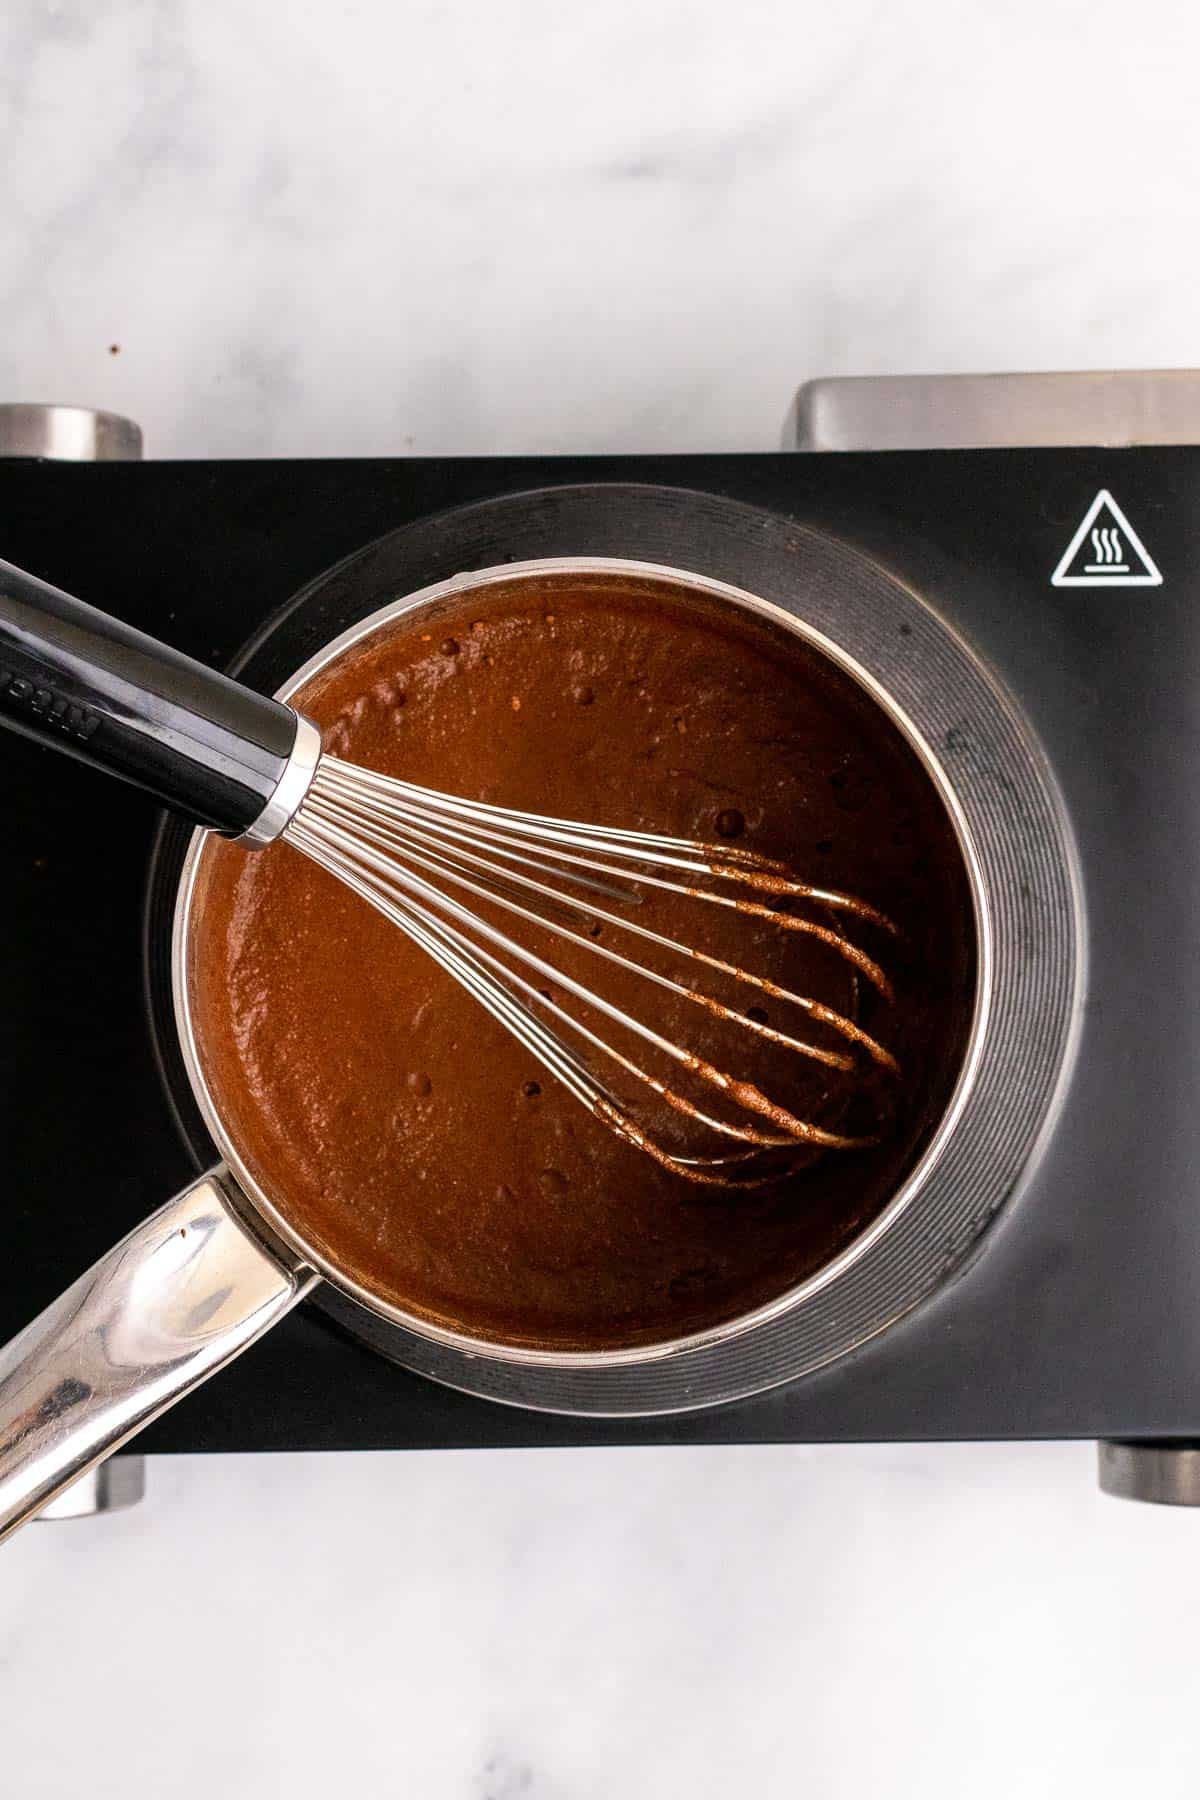 Ingredients combined in a medium saucepan with a whisk, as seen from above